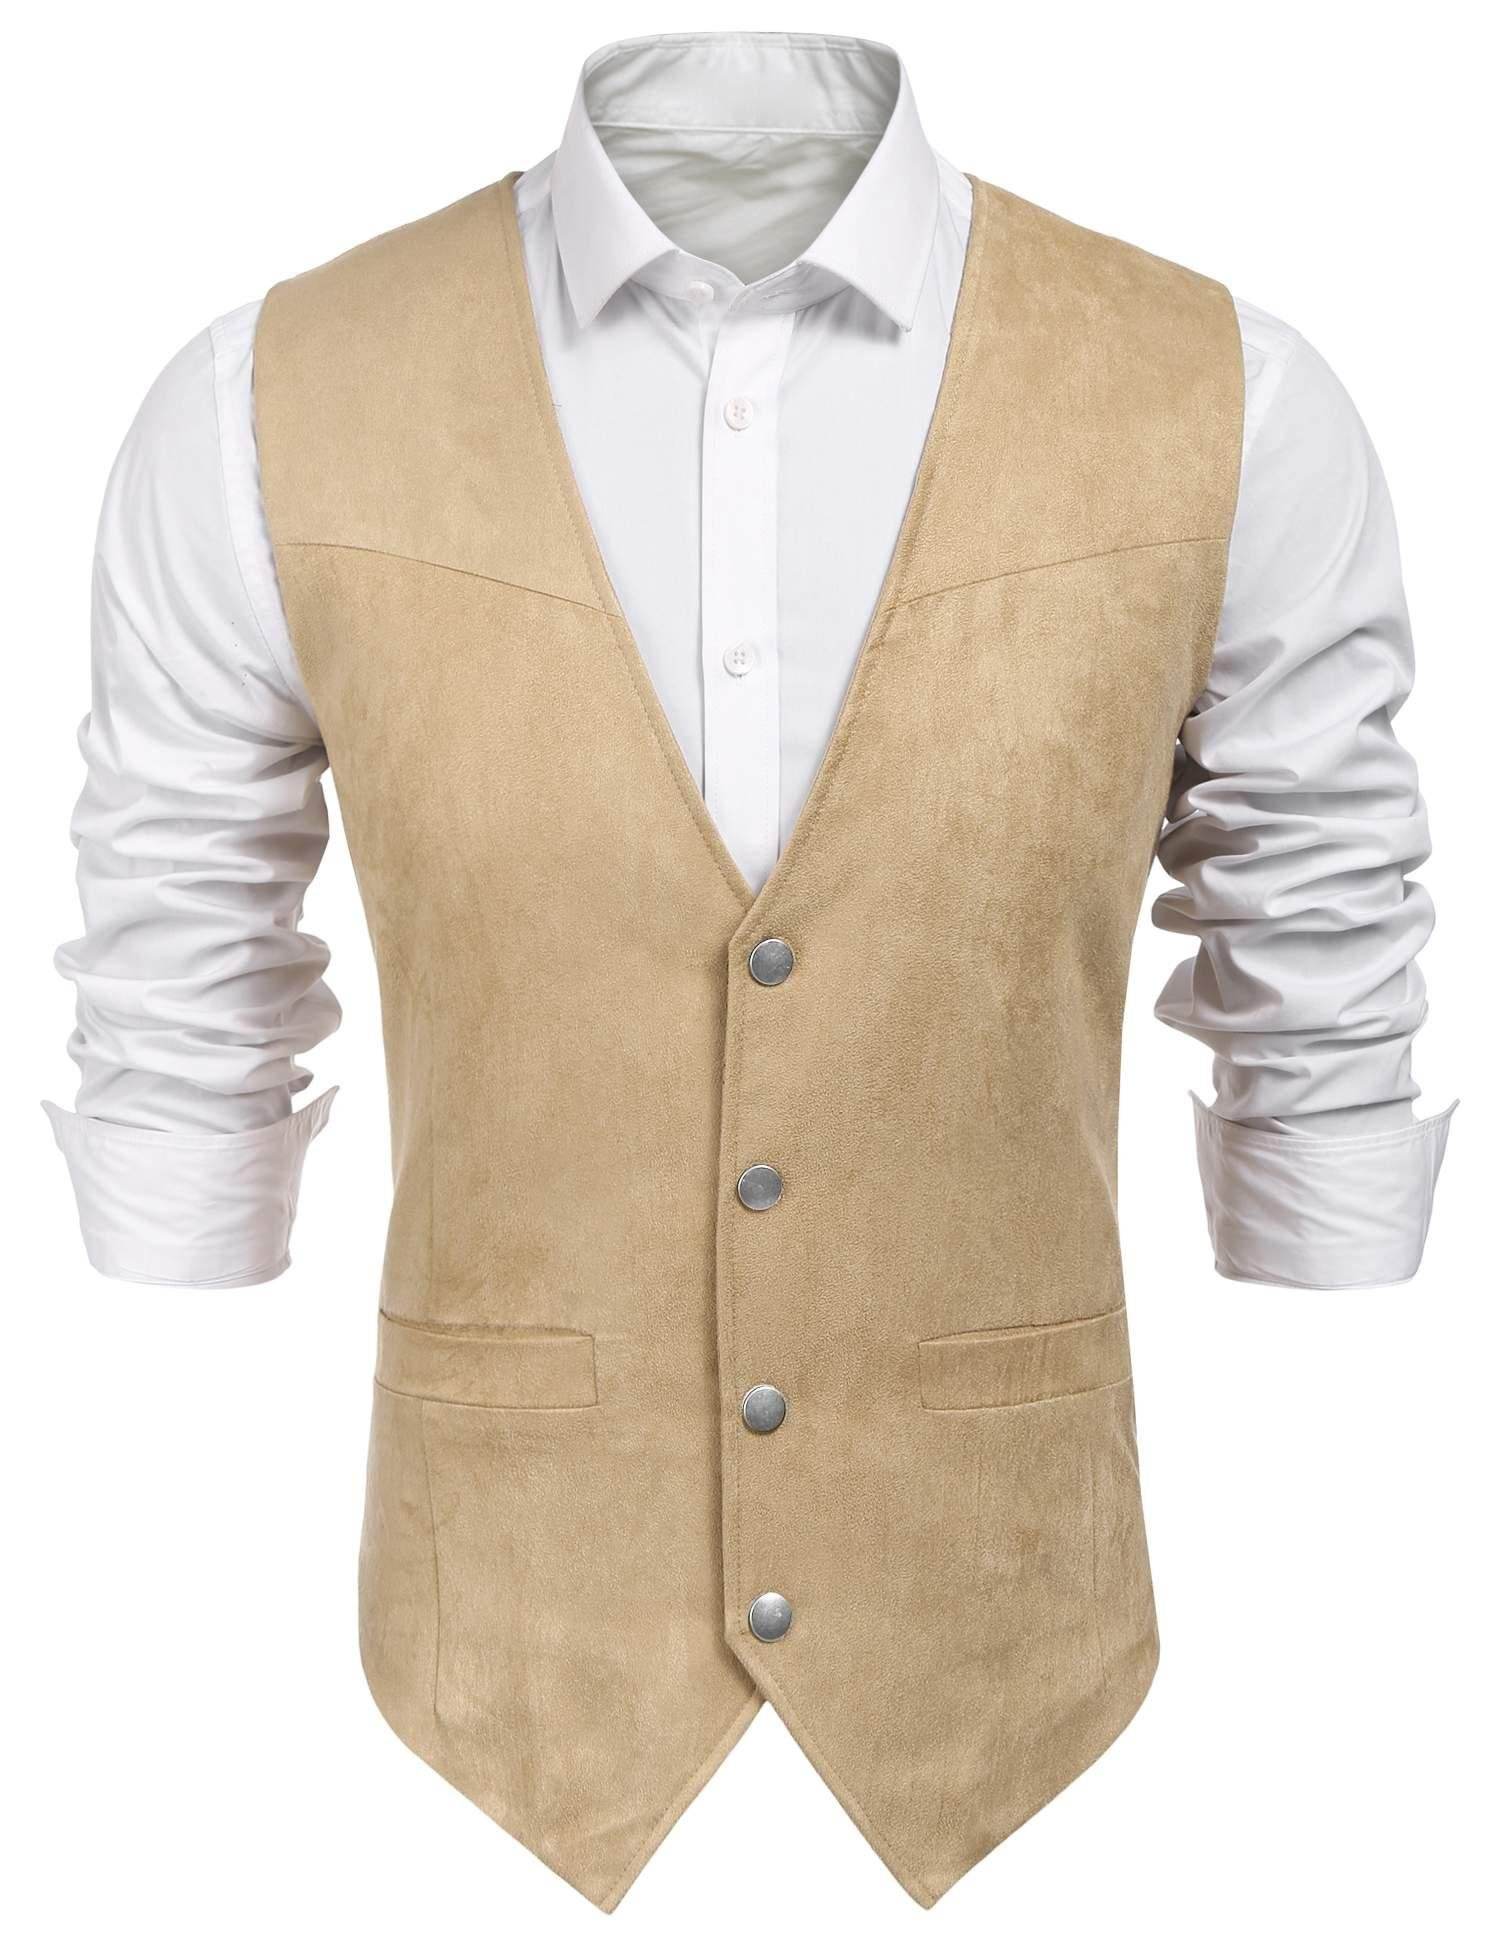 Edited Mens Faux Suede Vest Dress Suit Vest Formal Waistcoat for Wedding by Edited (Image #2)